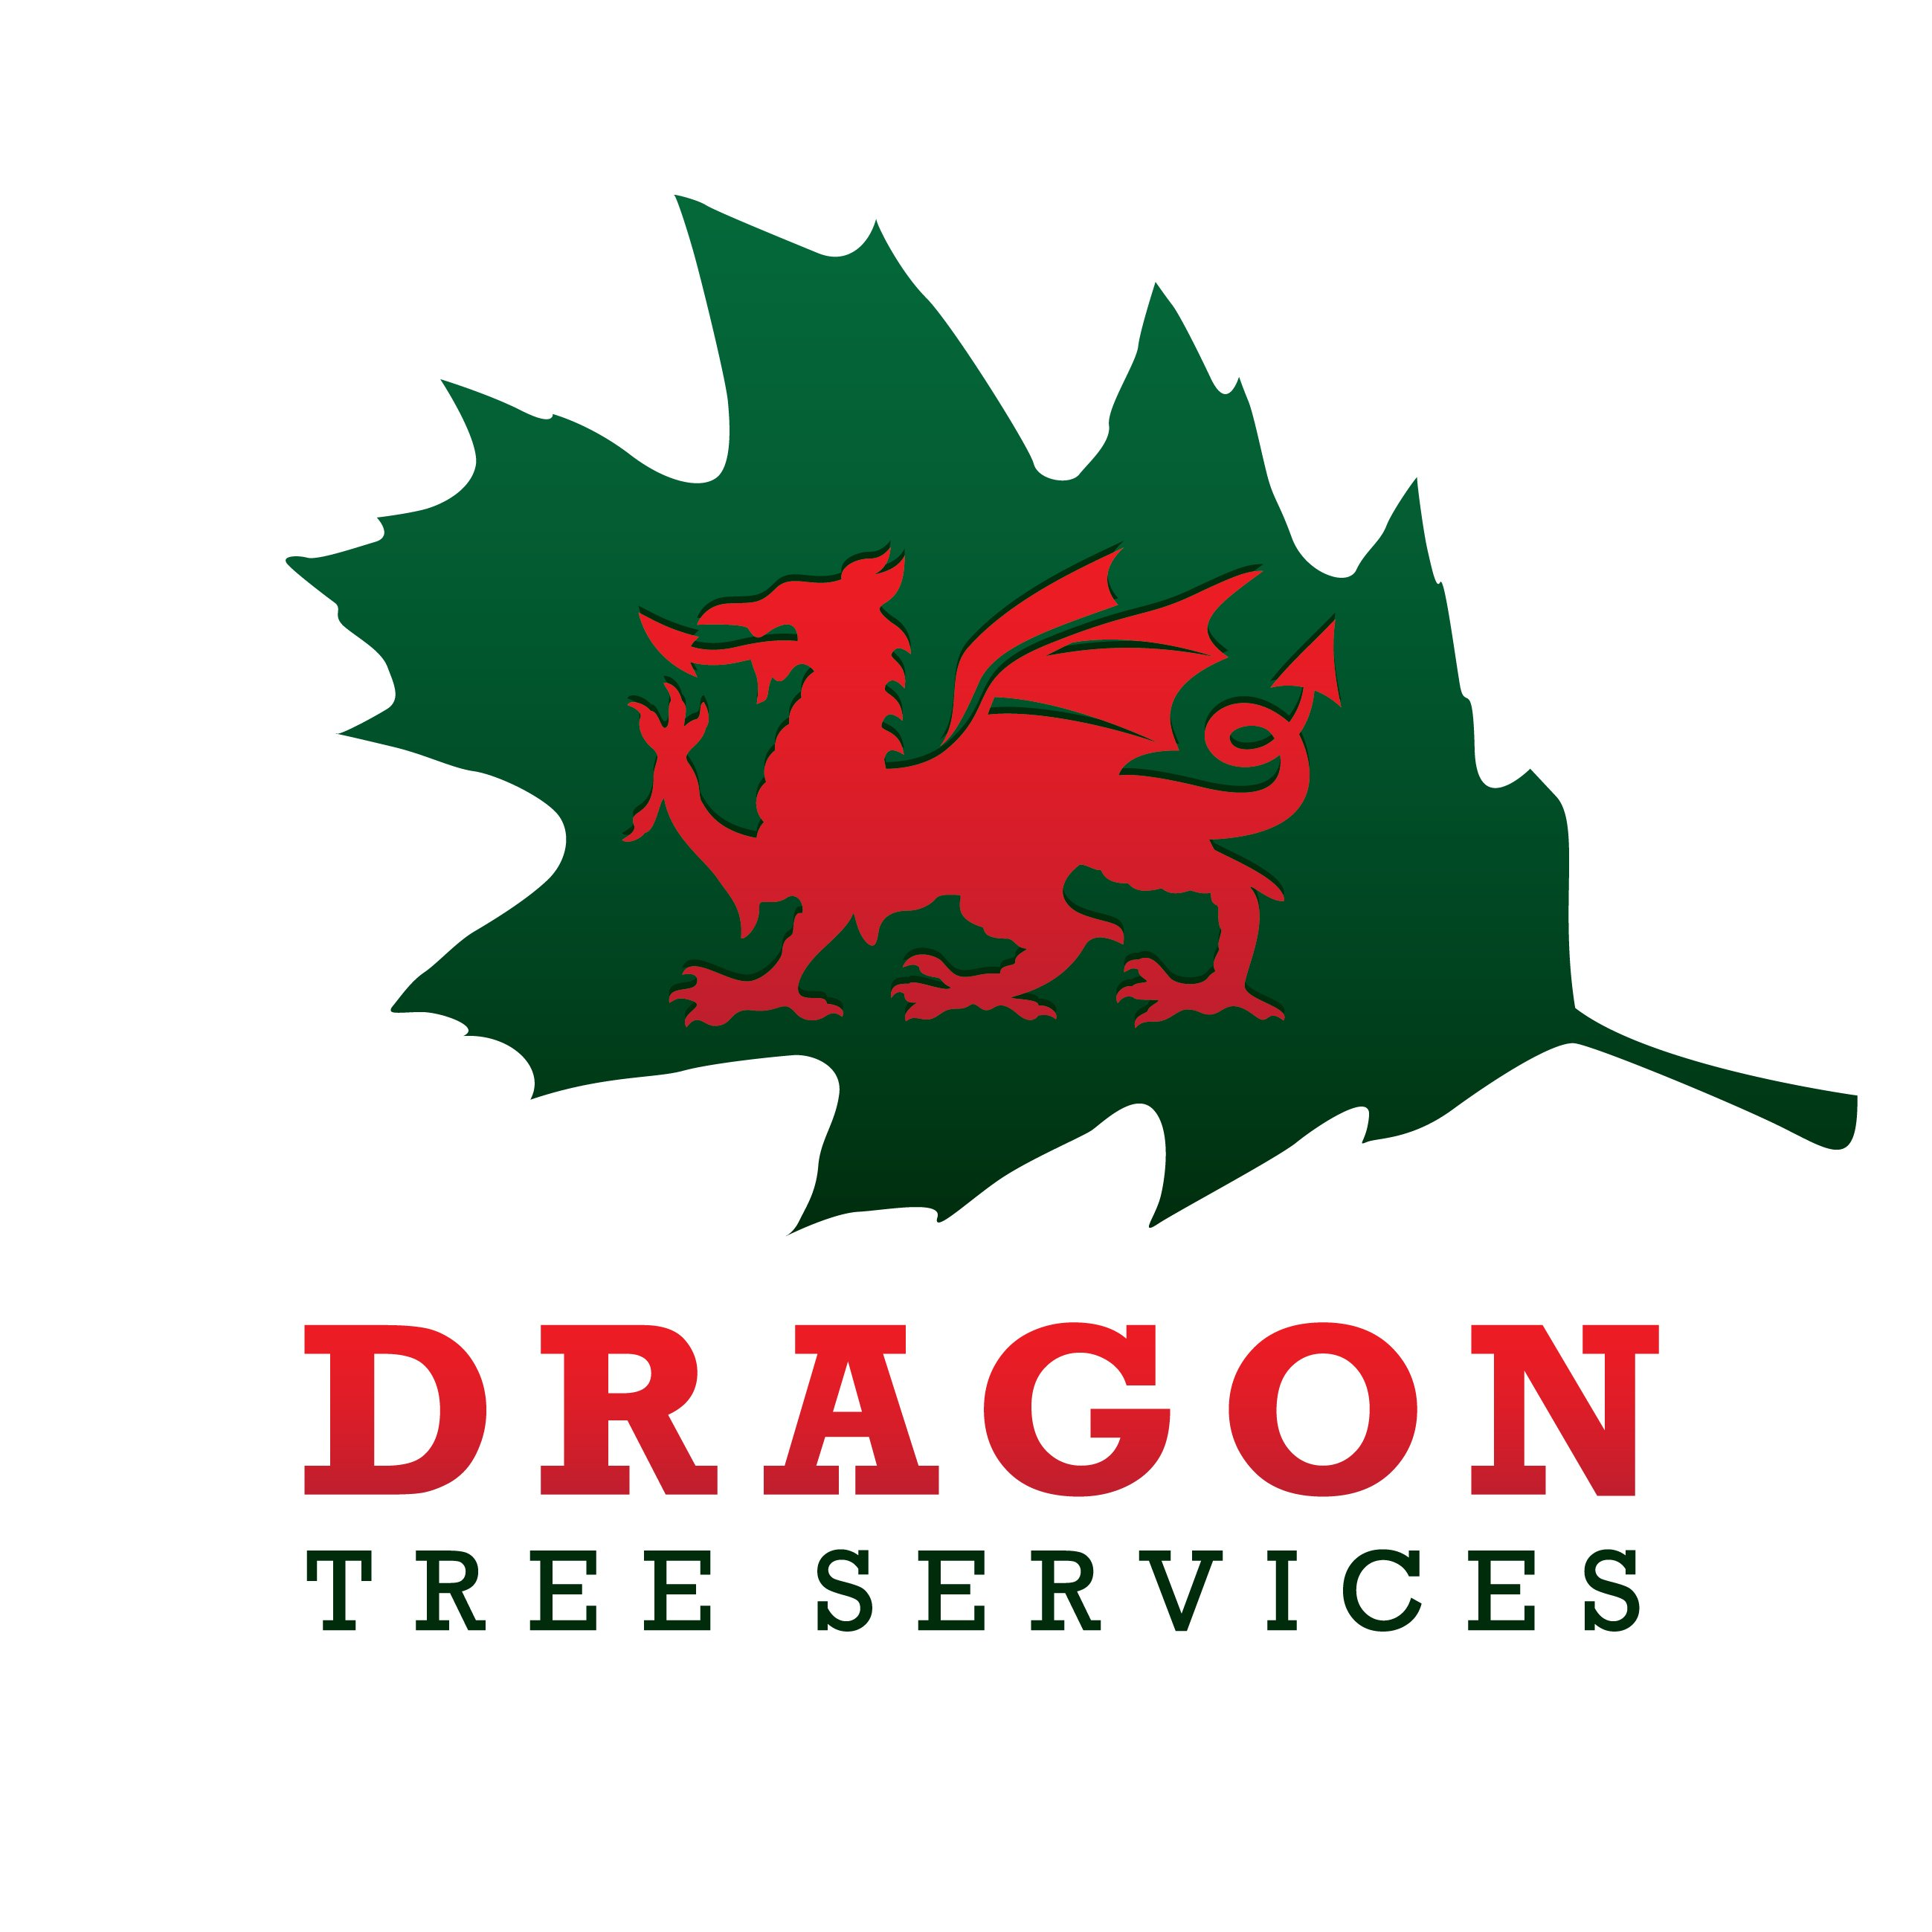 Dragon Tree Services provide all aspects of tree surgery throughput North Wales from Caernarfon, Bangor, Anglesey, Llanberis, Conwy, Betws y Coed, Pwllheli and all areas inbetween.